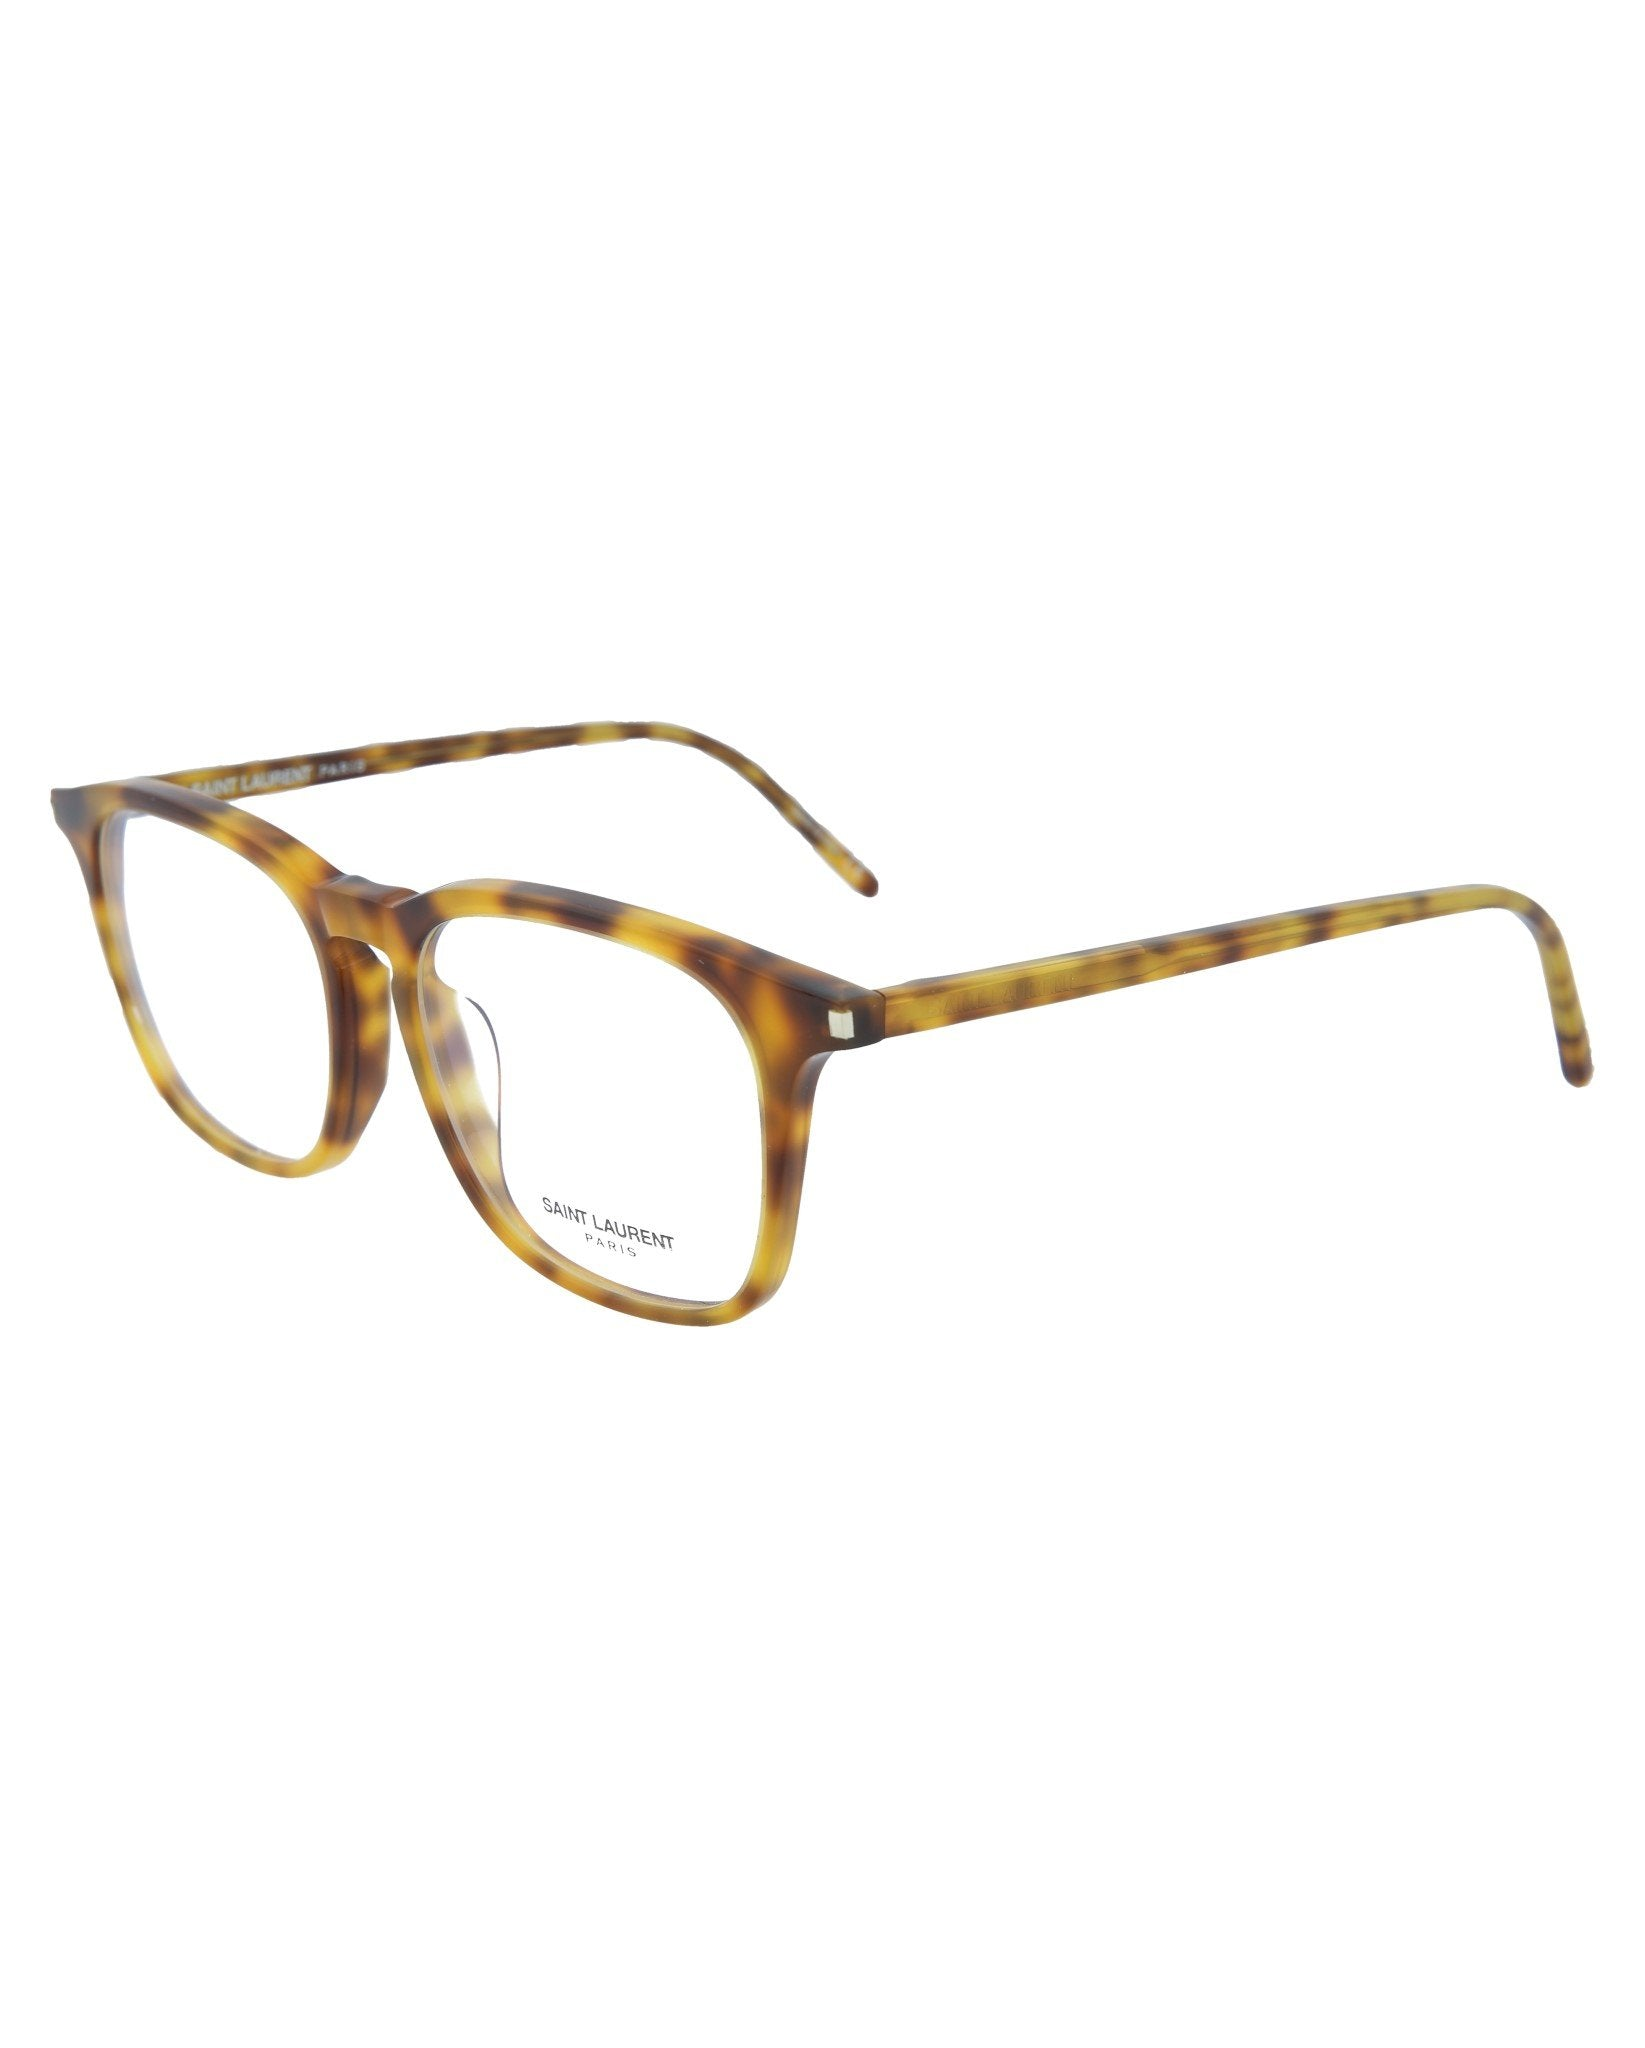 Saint Laurent Square/Rectangle Optical Frames